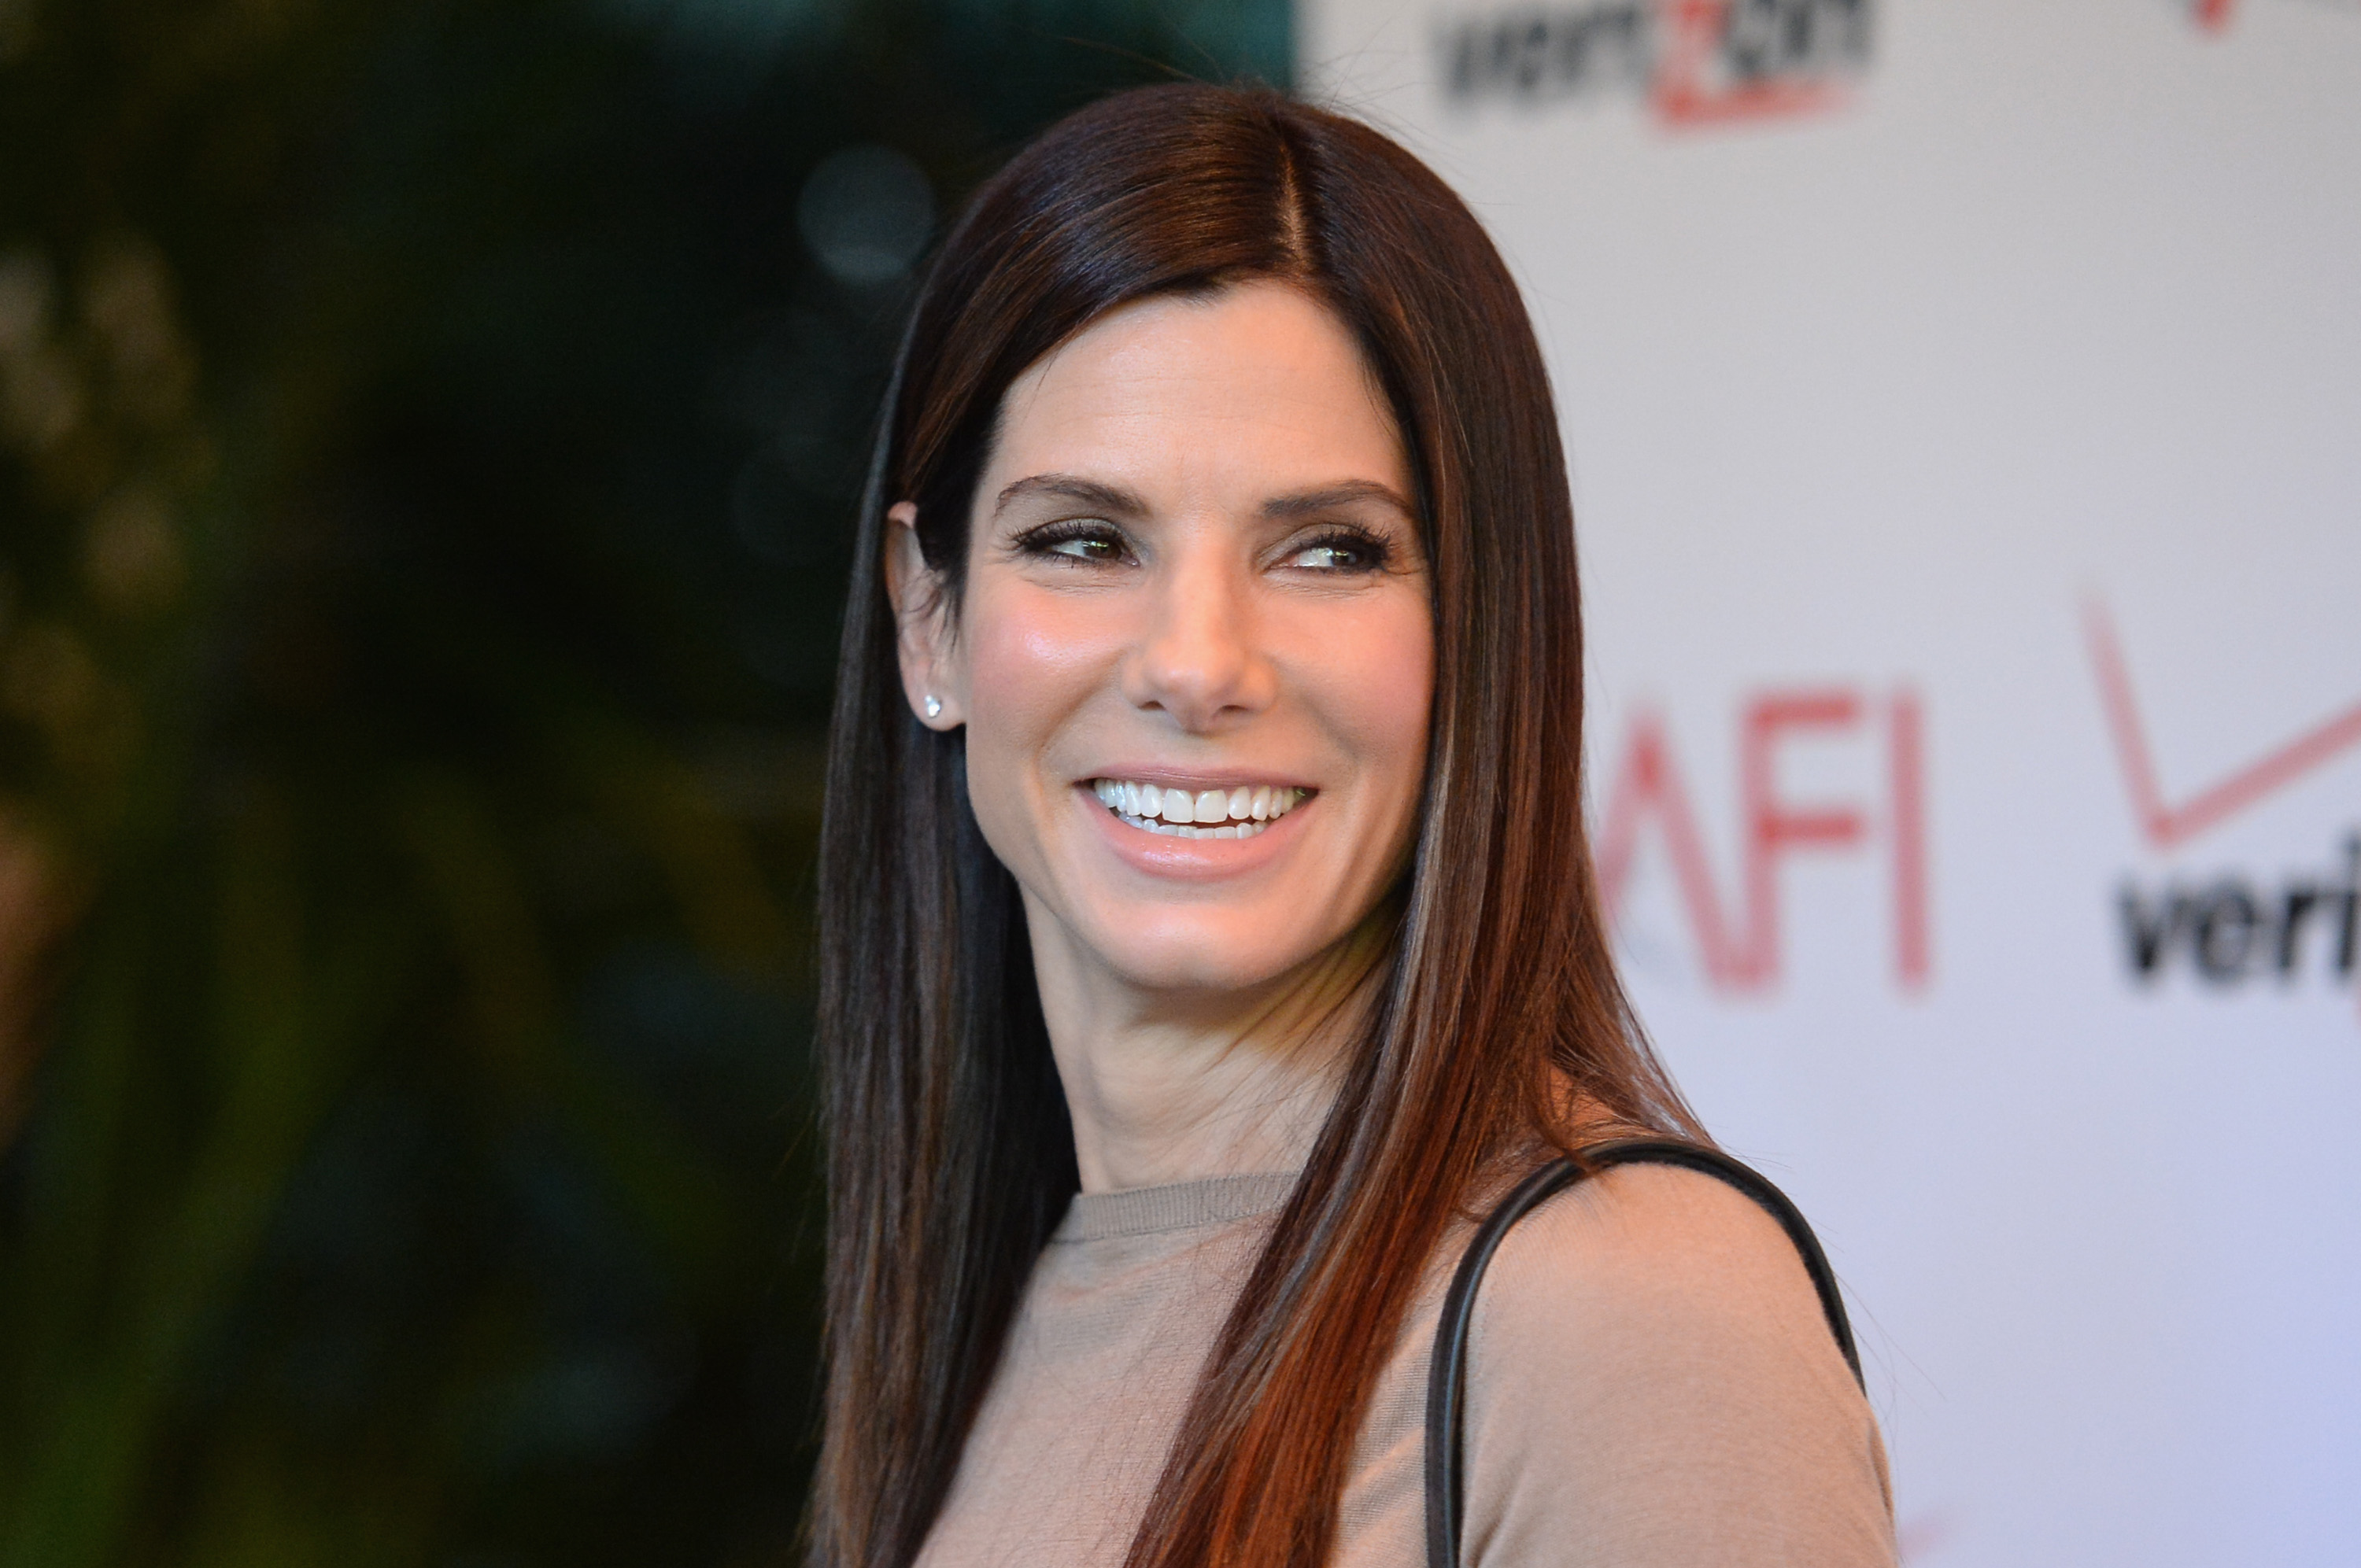 Eat Like Sandra Bullock: 12 Foods to Add to Your Diet If You're Over 50